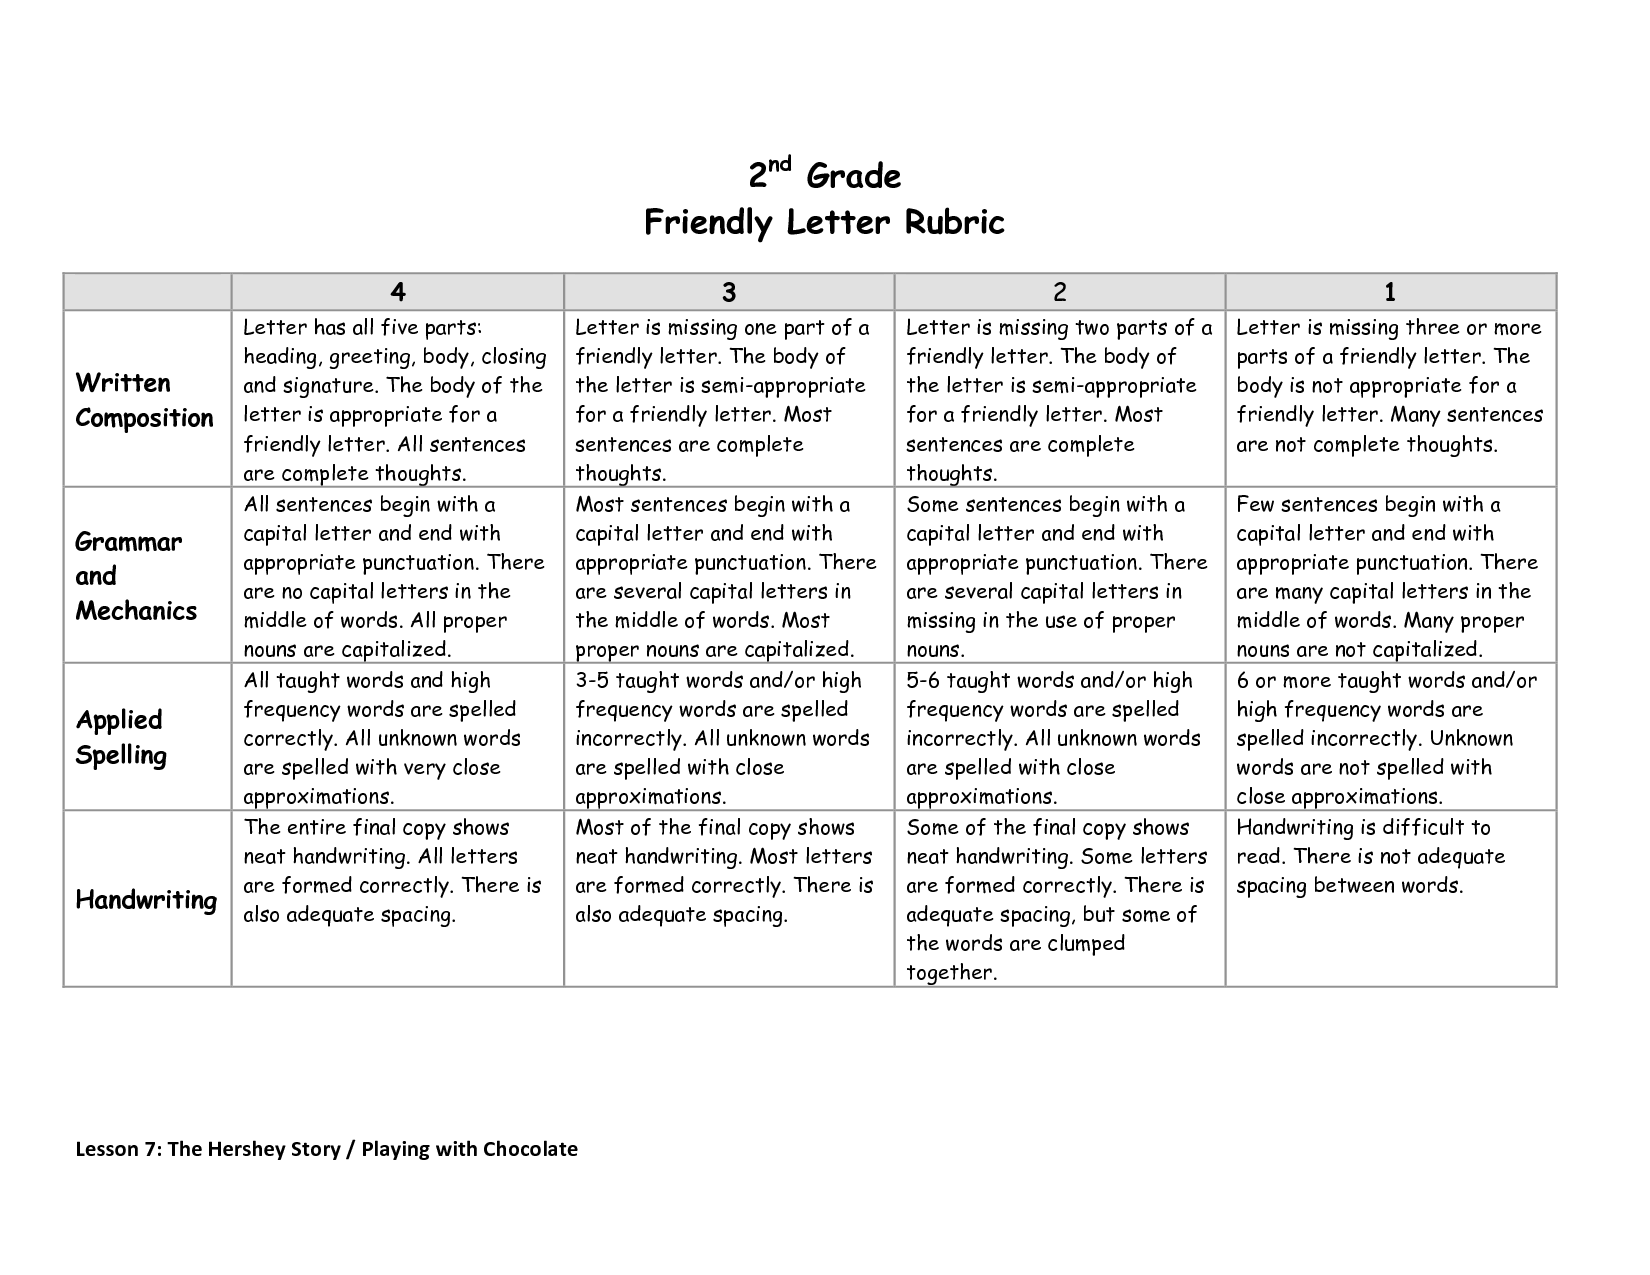 iRubric: 2nd Grade Writing Assignment Rubric